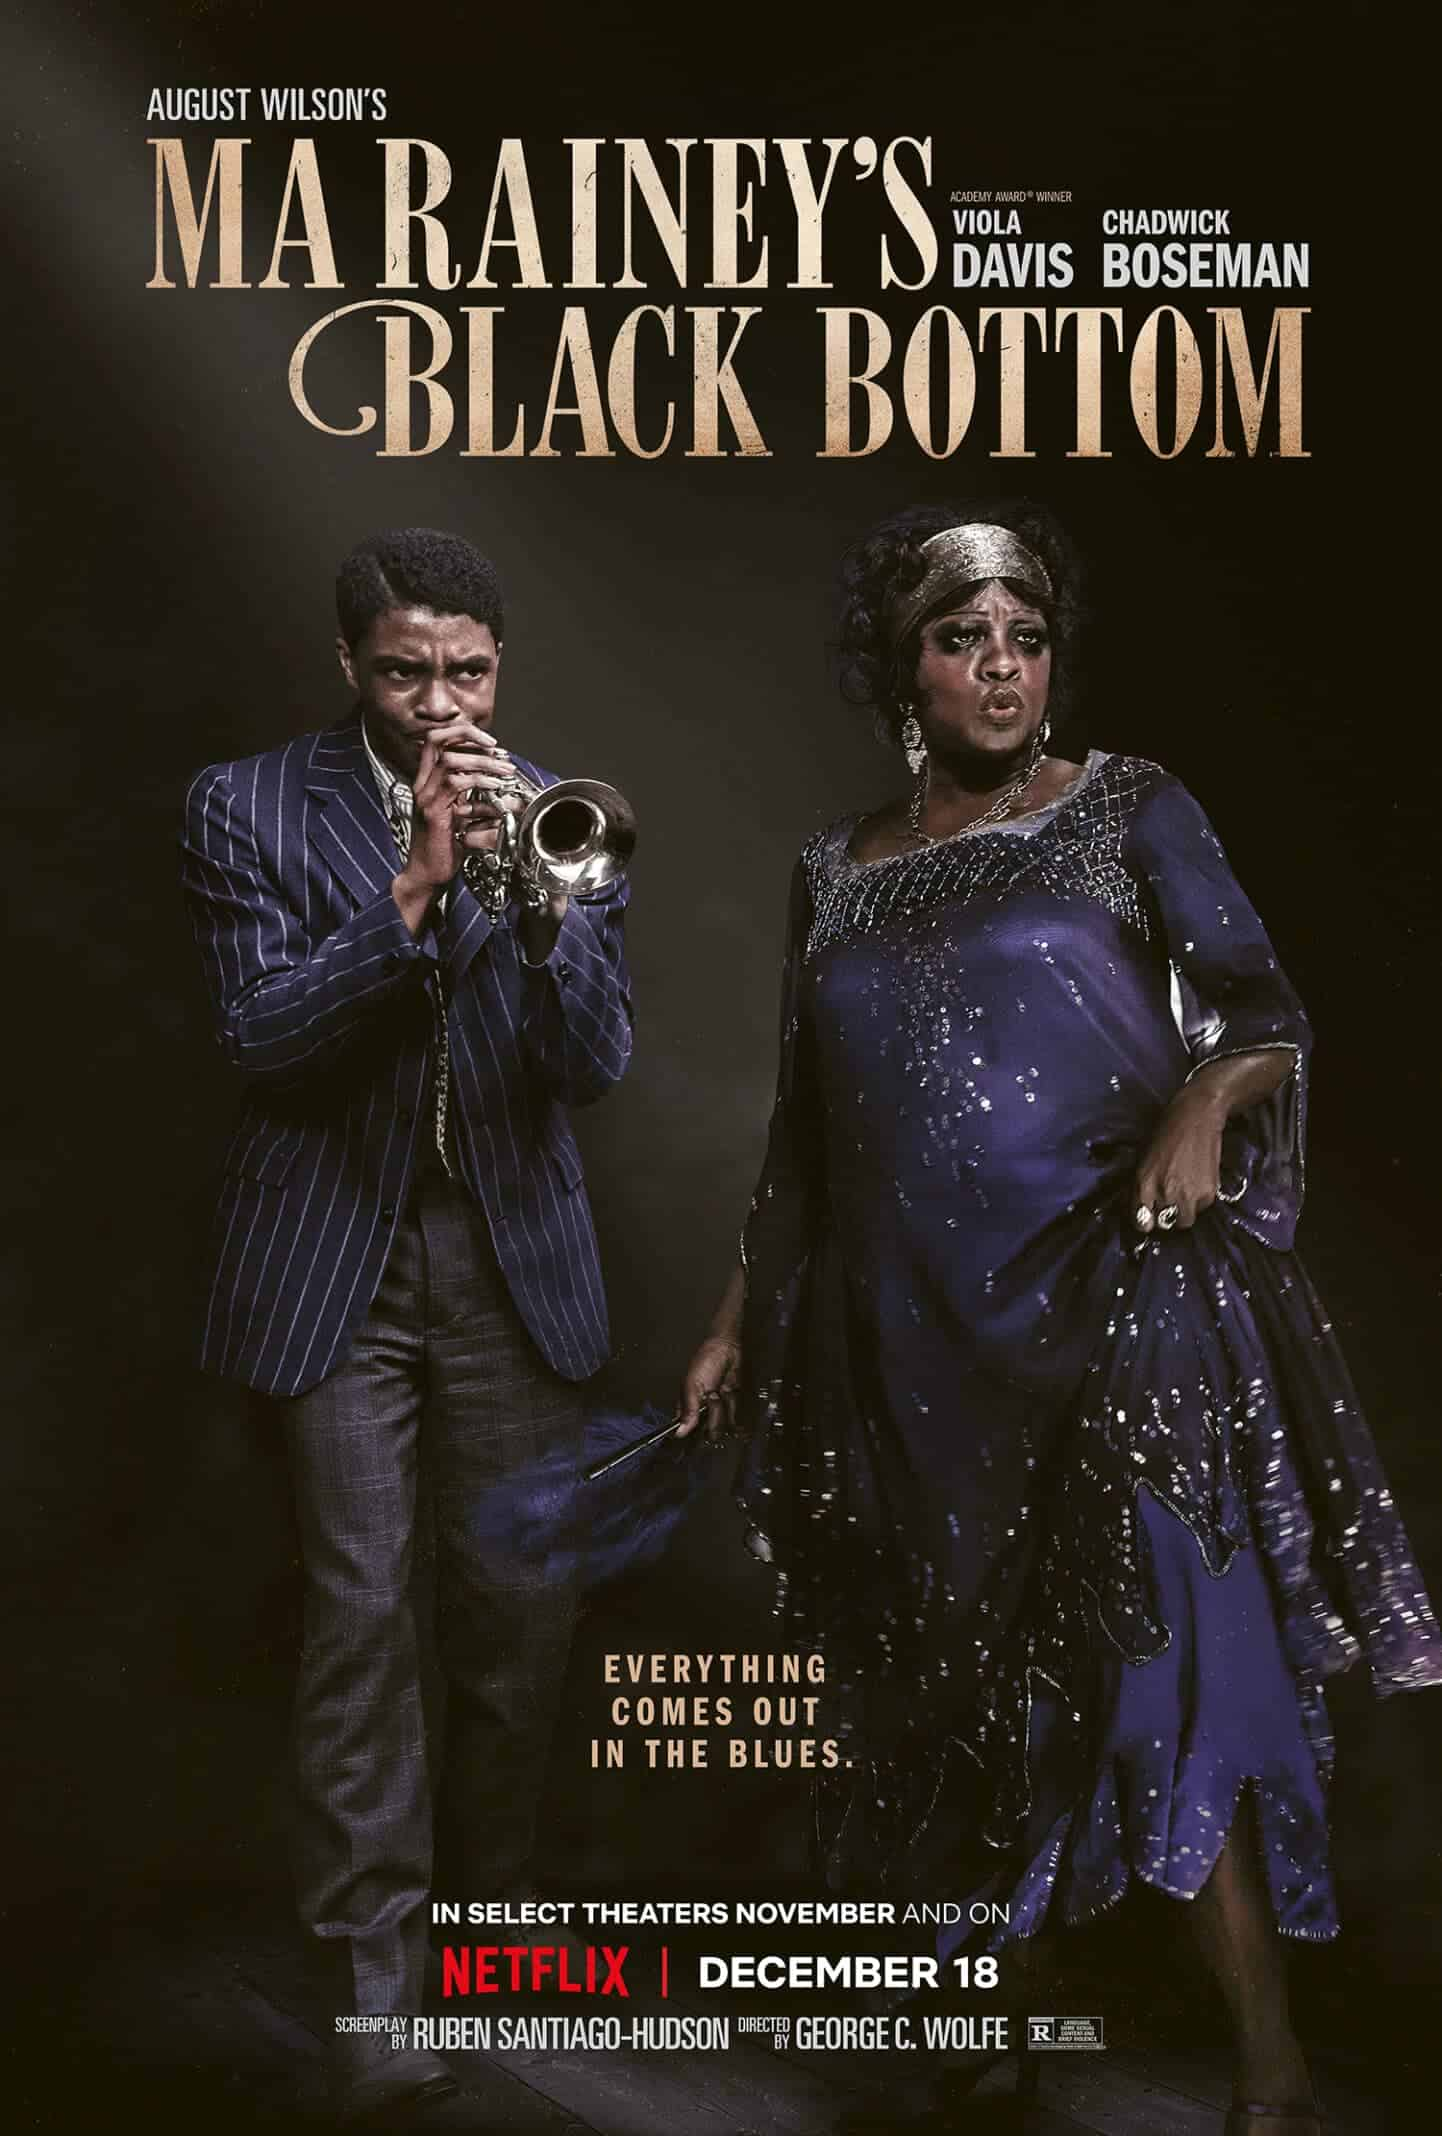 Levee (Chadwick Boseman) and Ma Rainey (Viola Davis) in Ma Rainey's Black Bottom